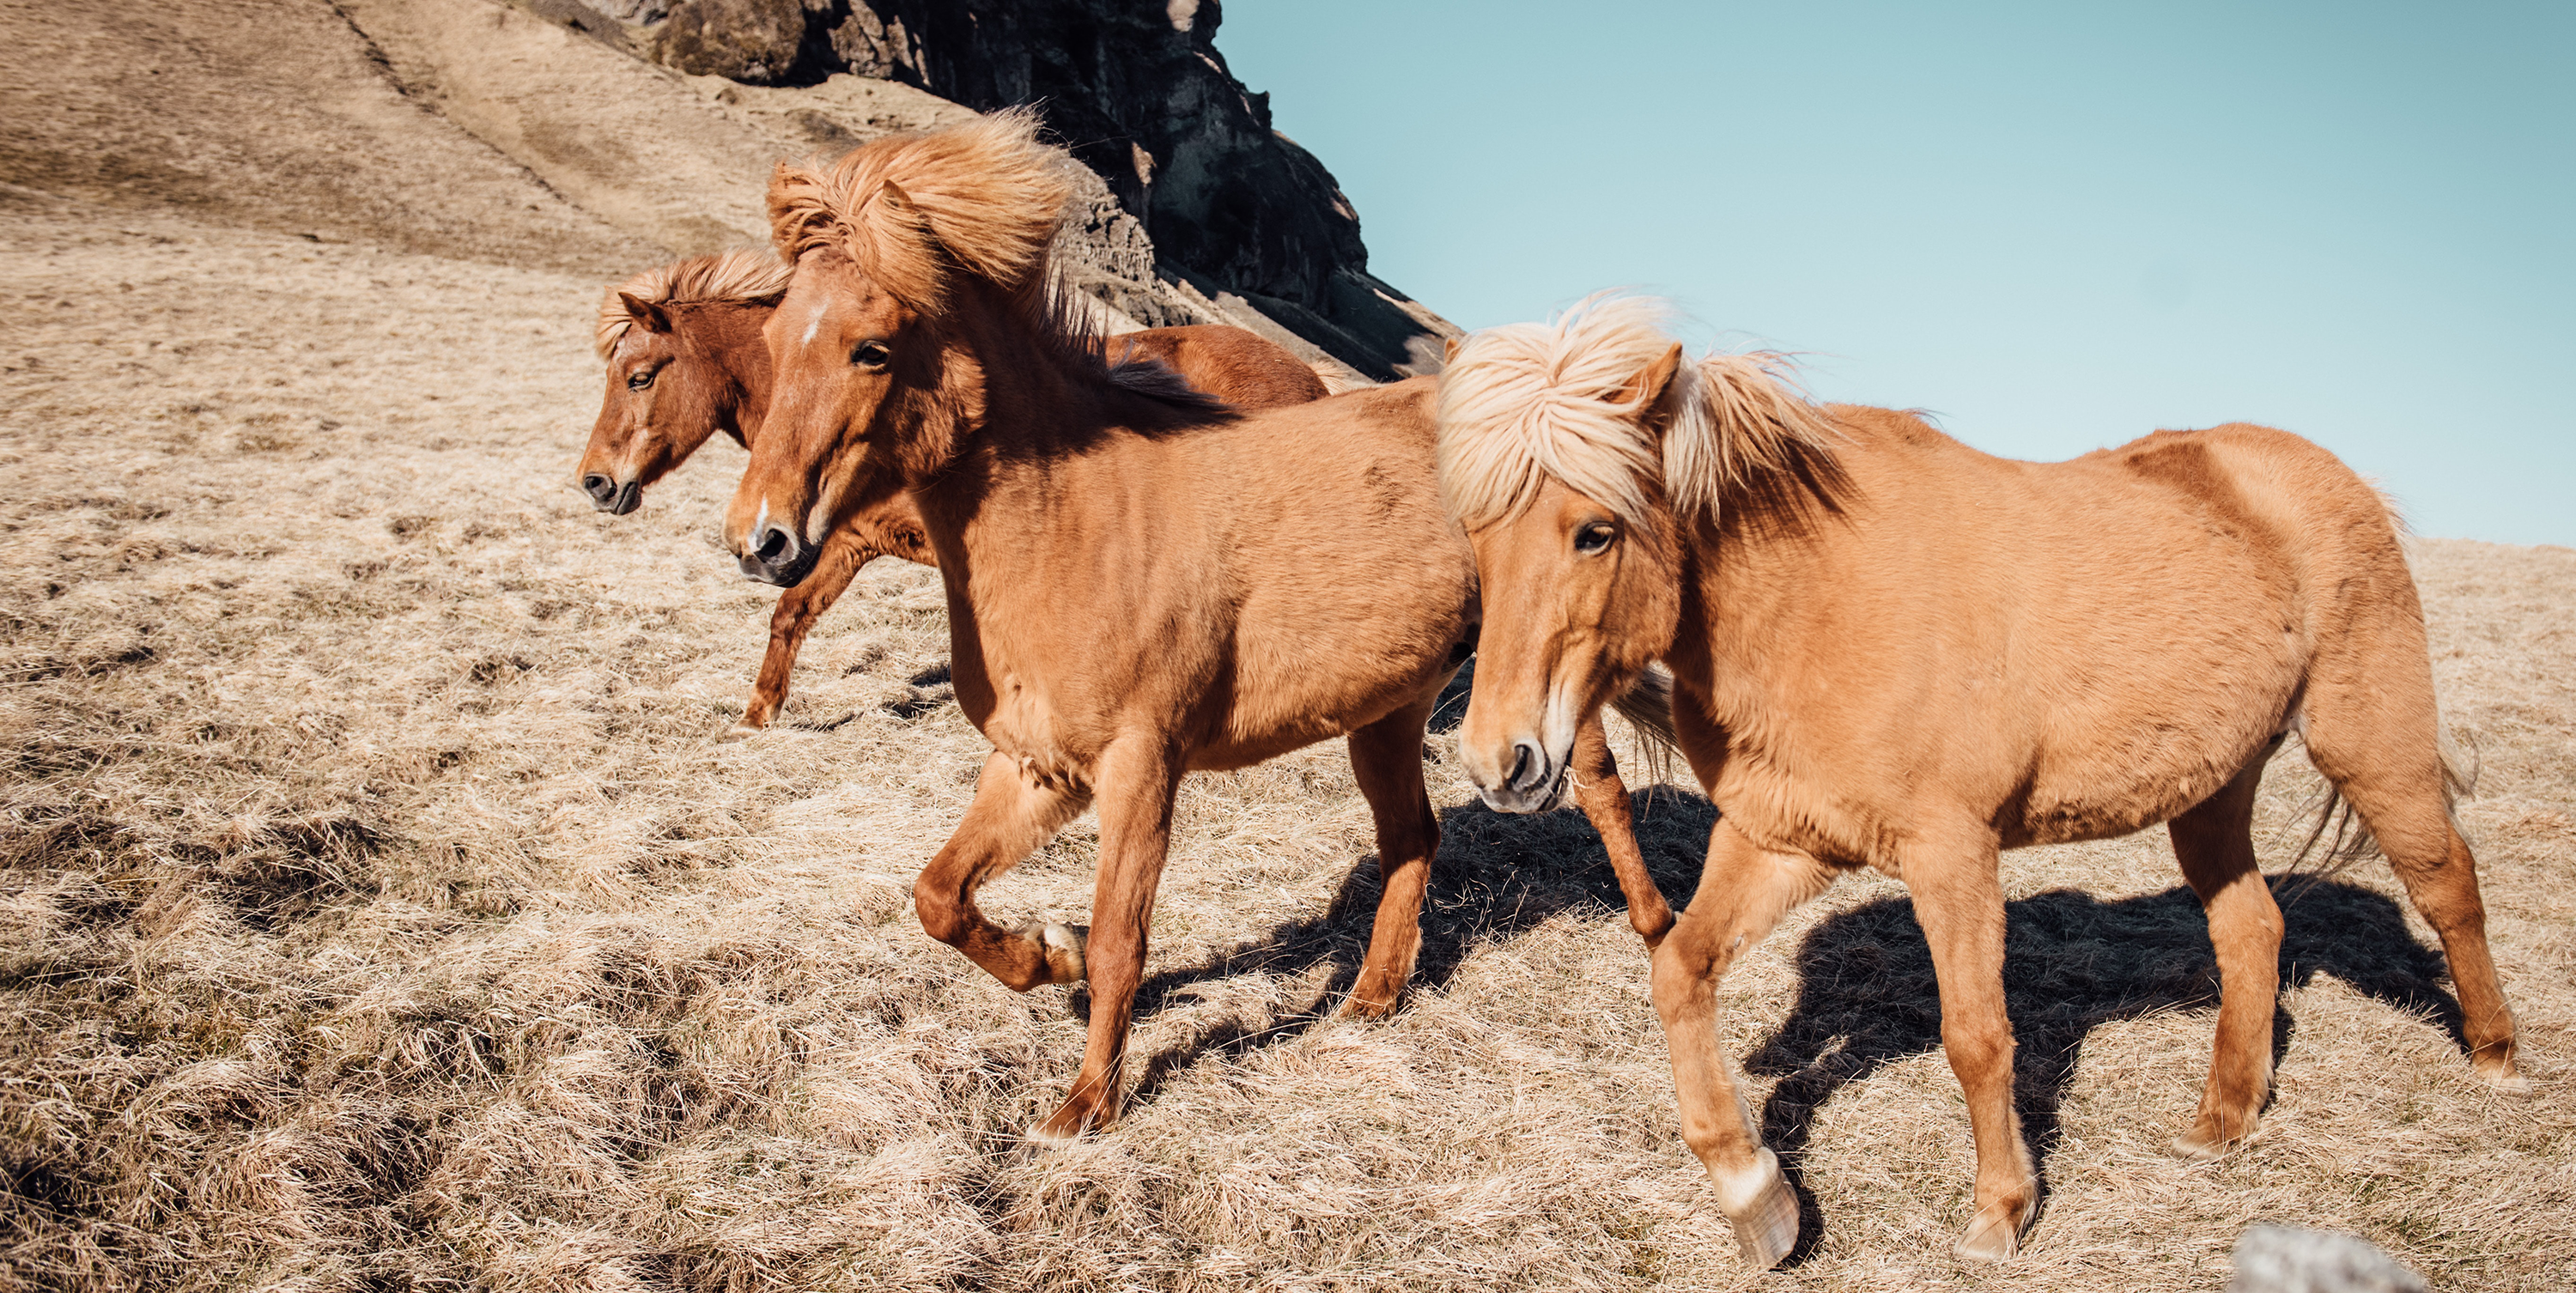 Ditch the certainty blinders. Horses run free on a mountain. From Upsplash by alice-donovan-rouse-ivObfp8F4rg